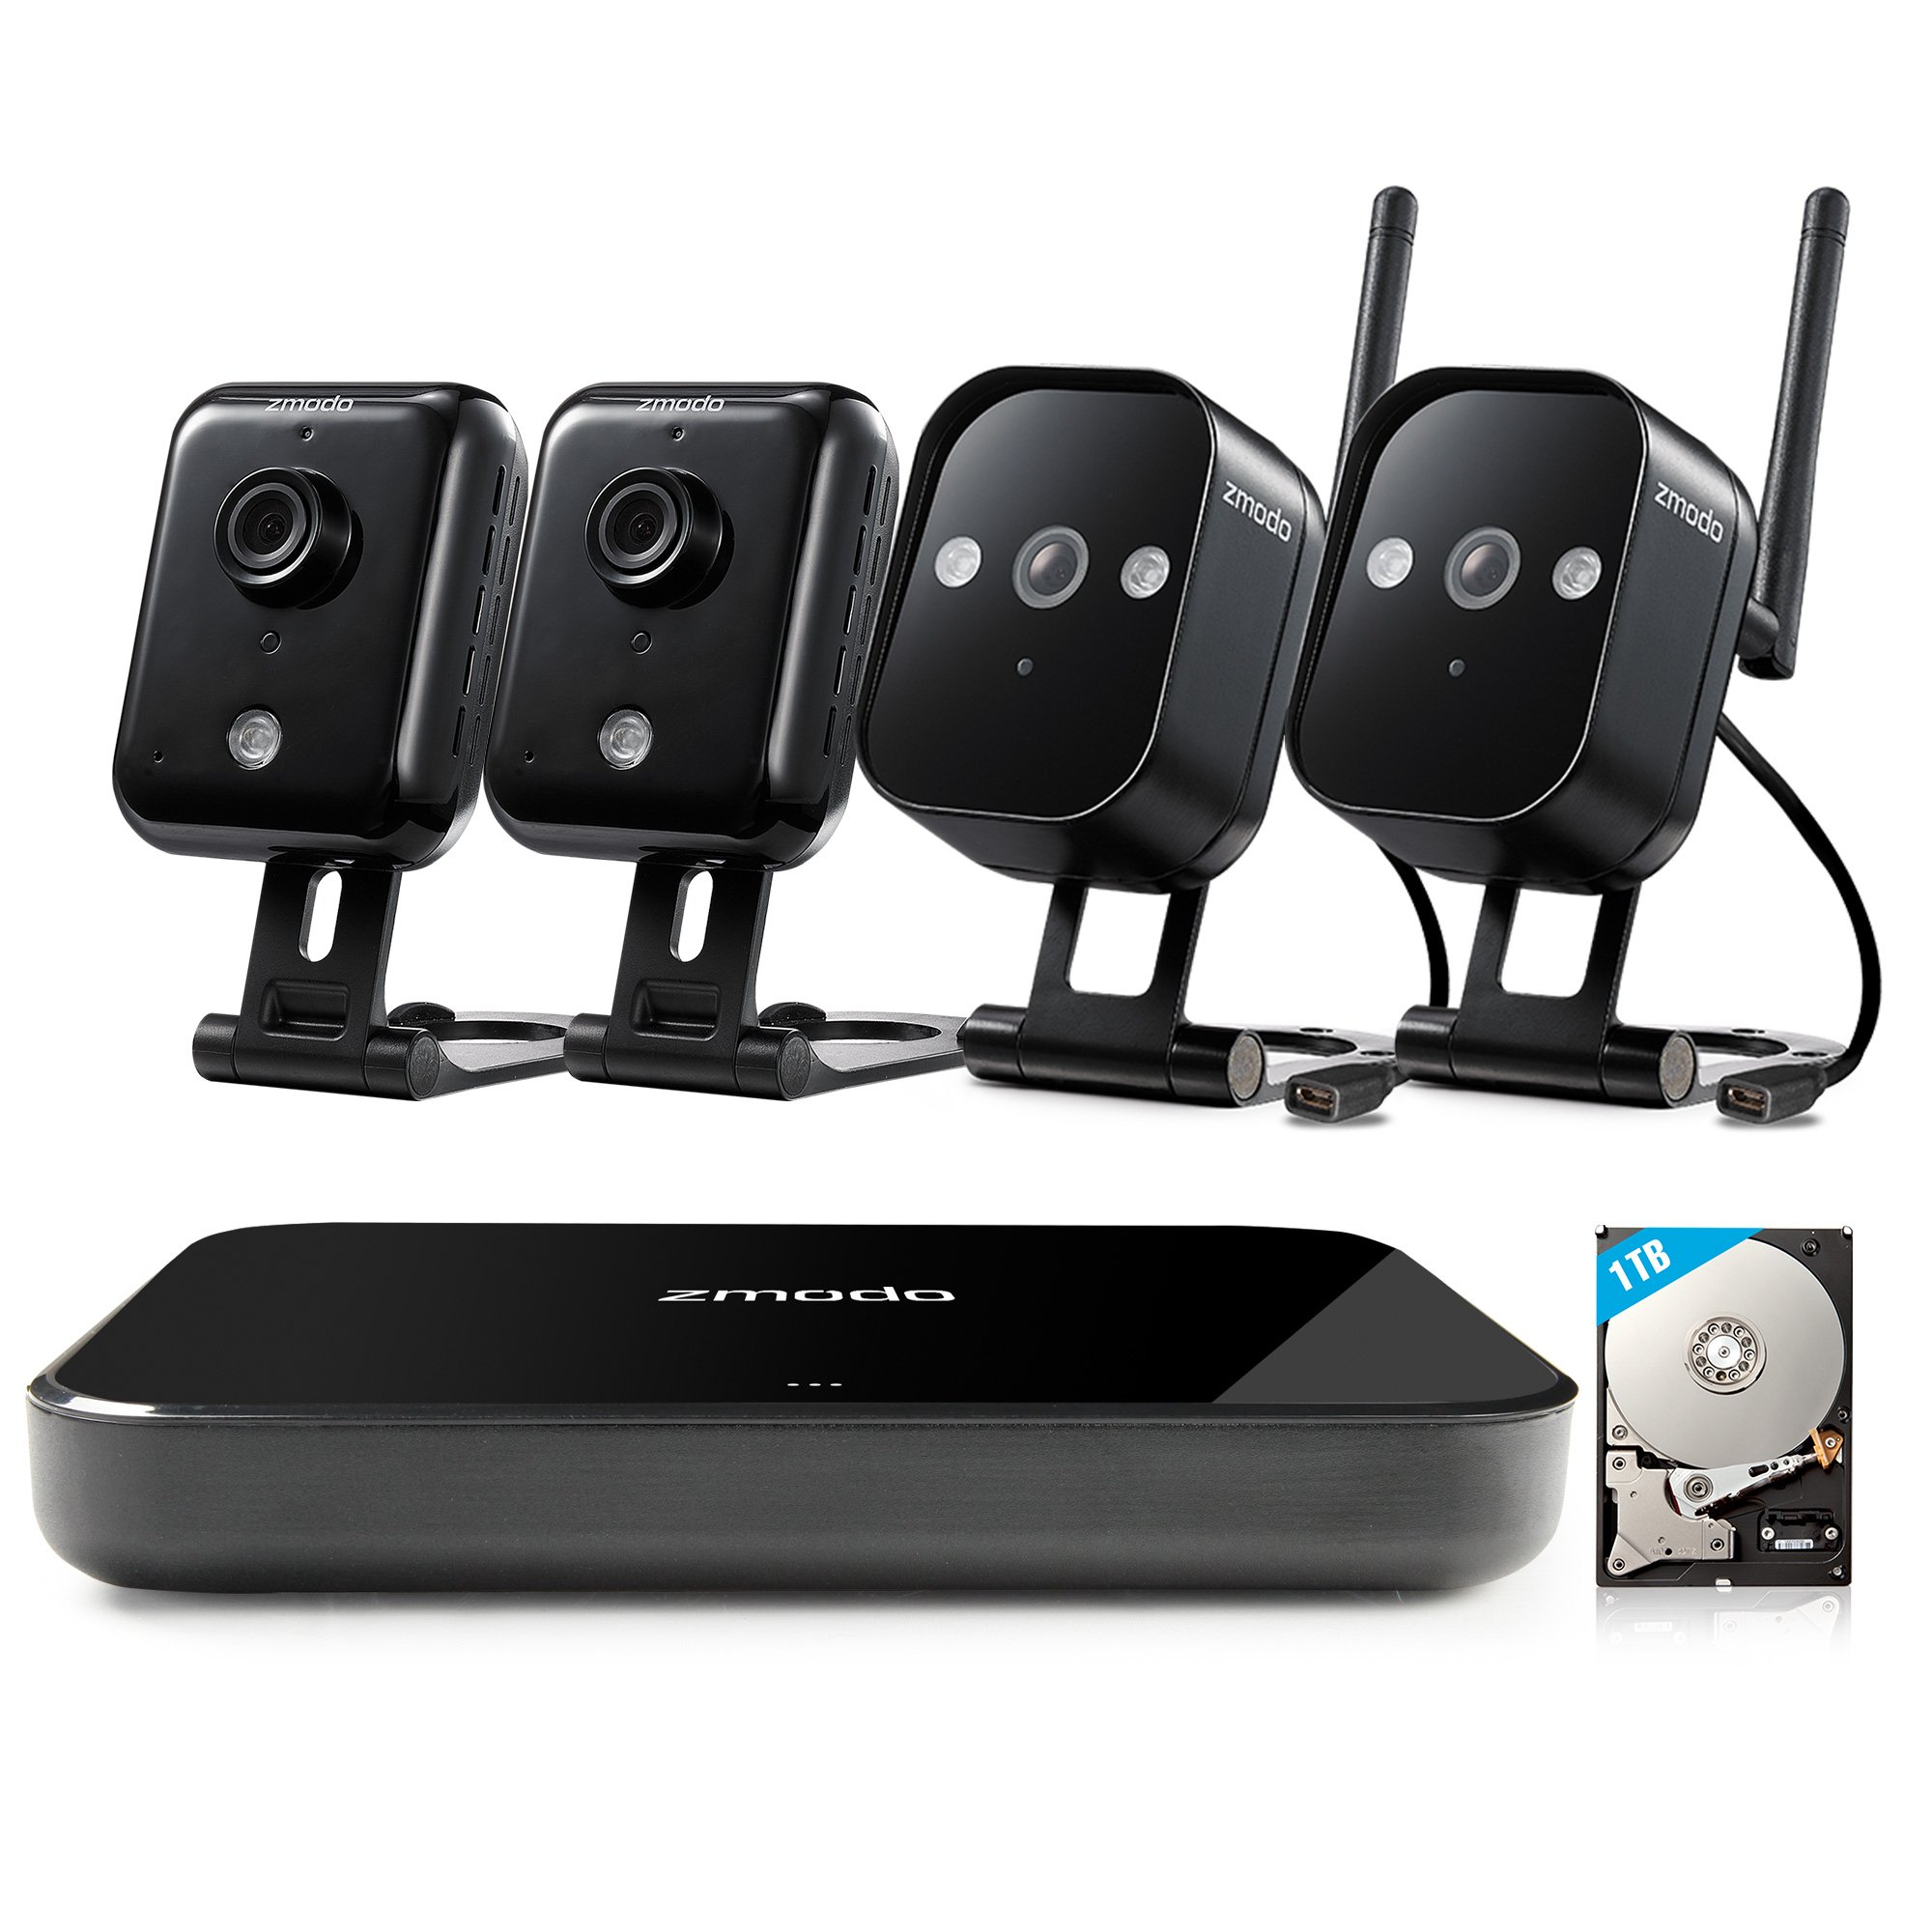 Zmodo Replay - HD WiFi Wireless Camera Security System Full Kit (1TB Hard Drive) by Zmodo